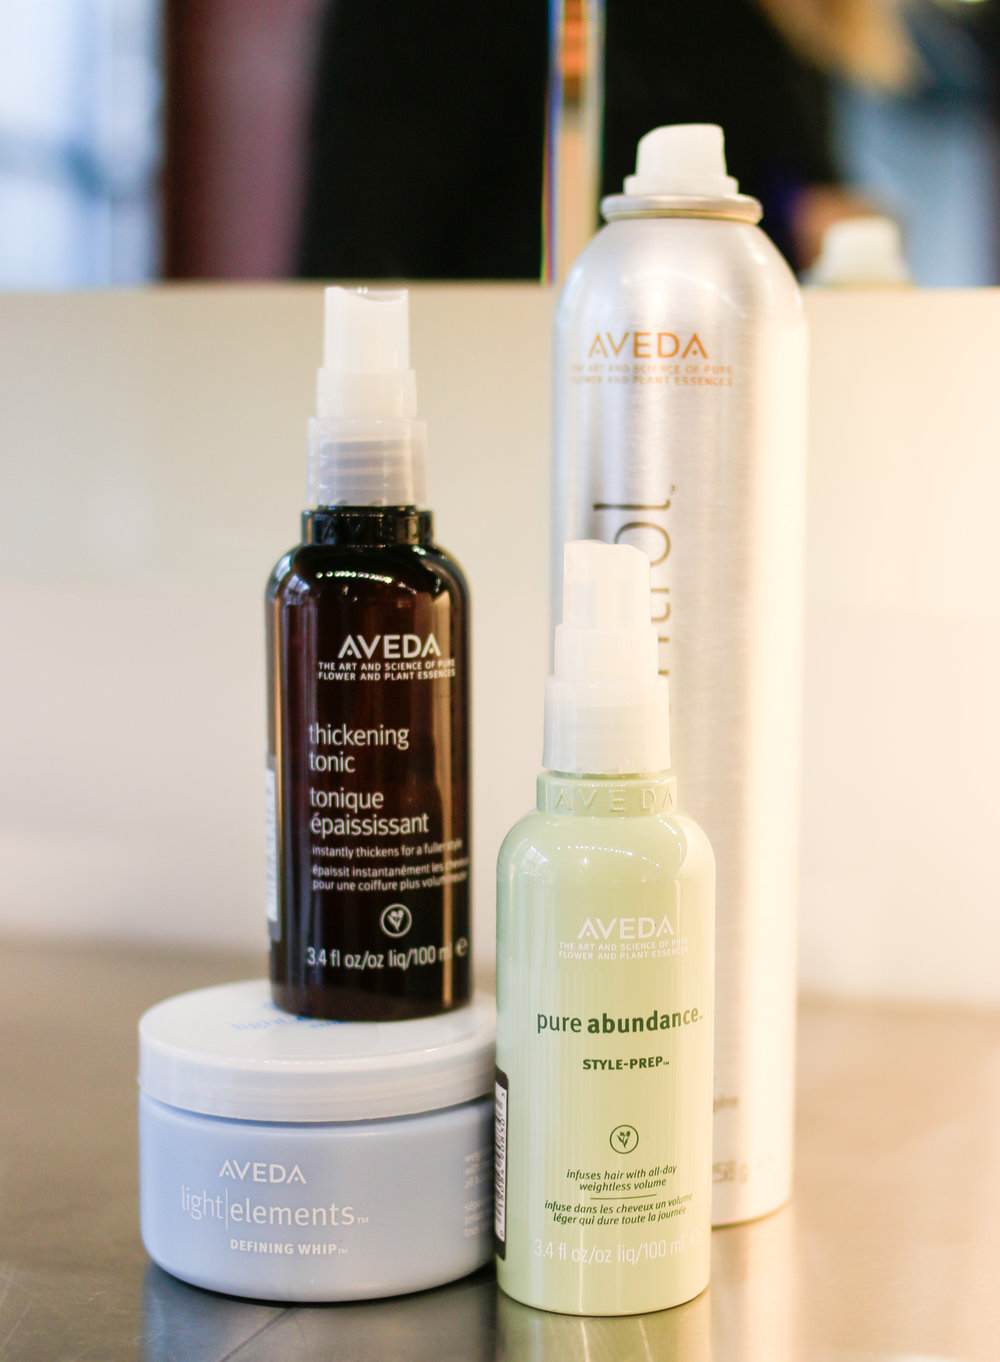 Aveda Products used to style my hair